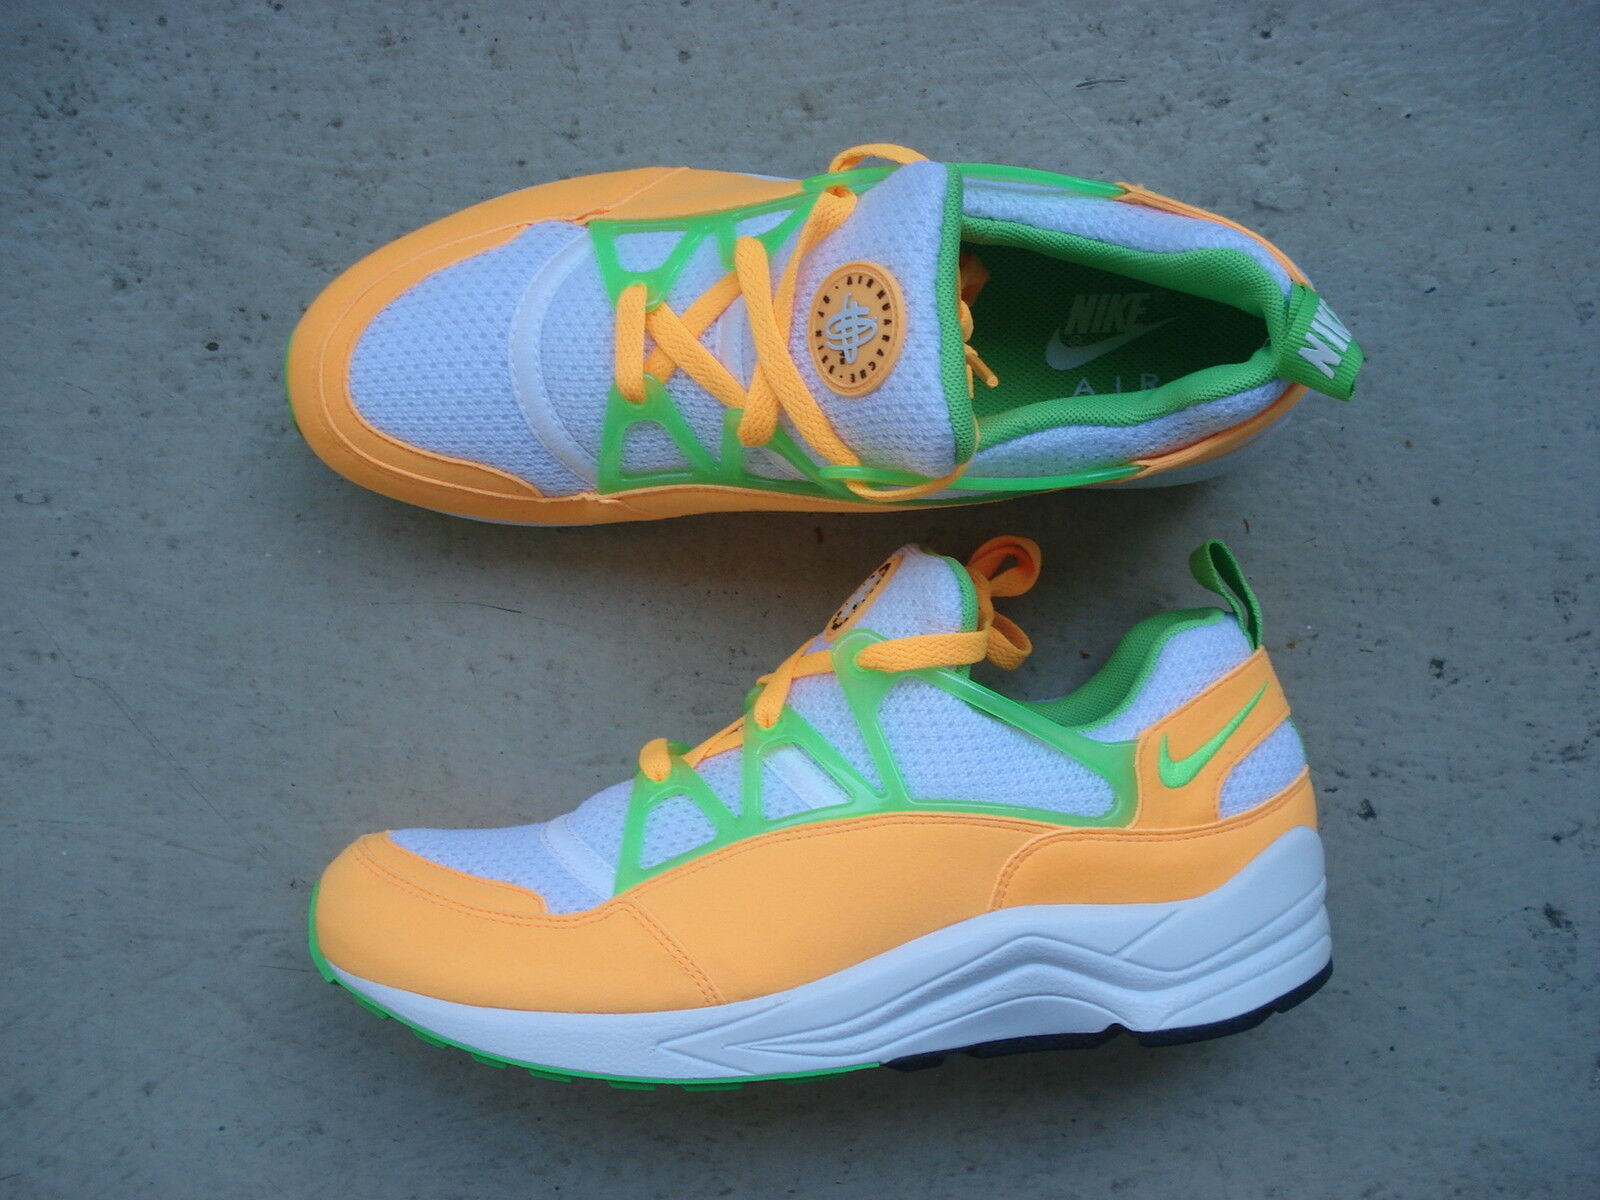 Nike Air Huarache Huarache Huarache Light 45.5 Atomic Mango/Action Grün-Weiß 8a35e2